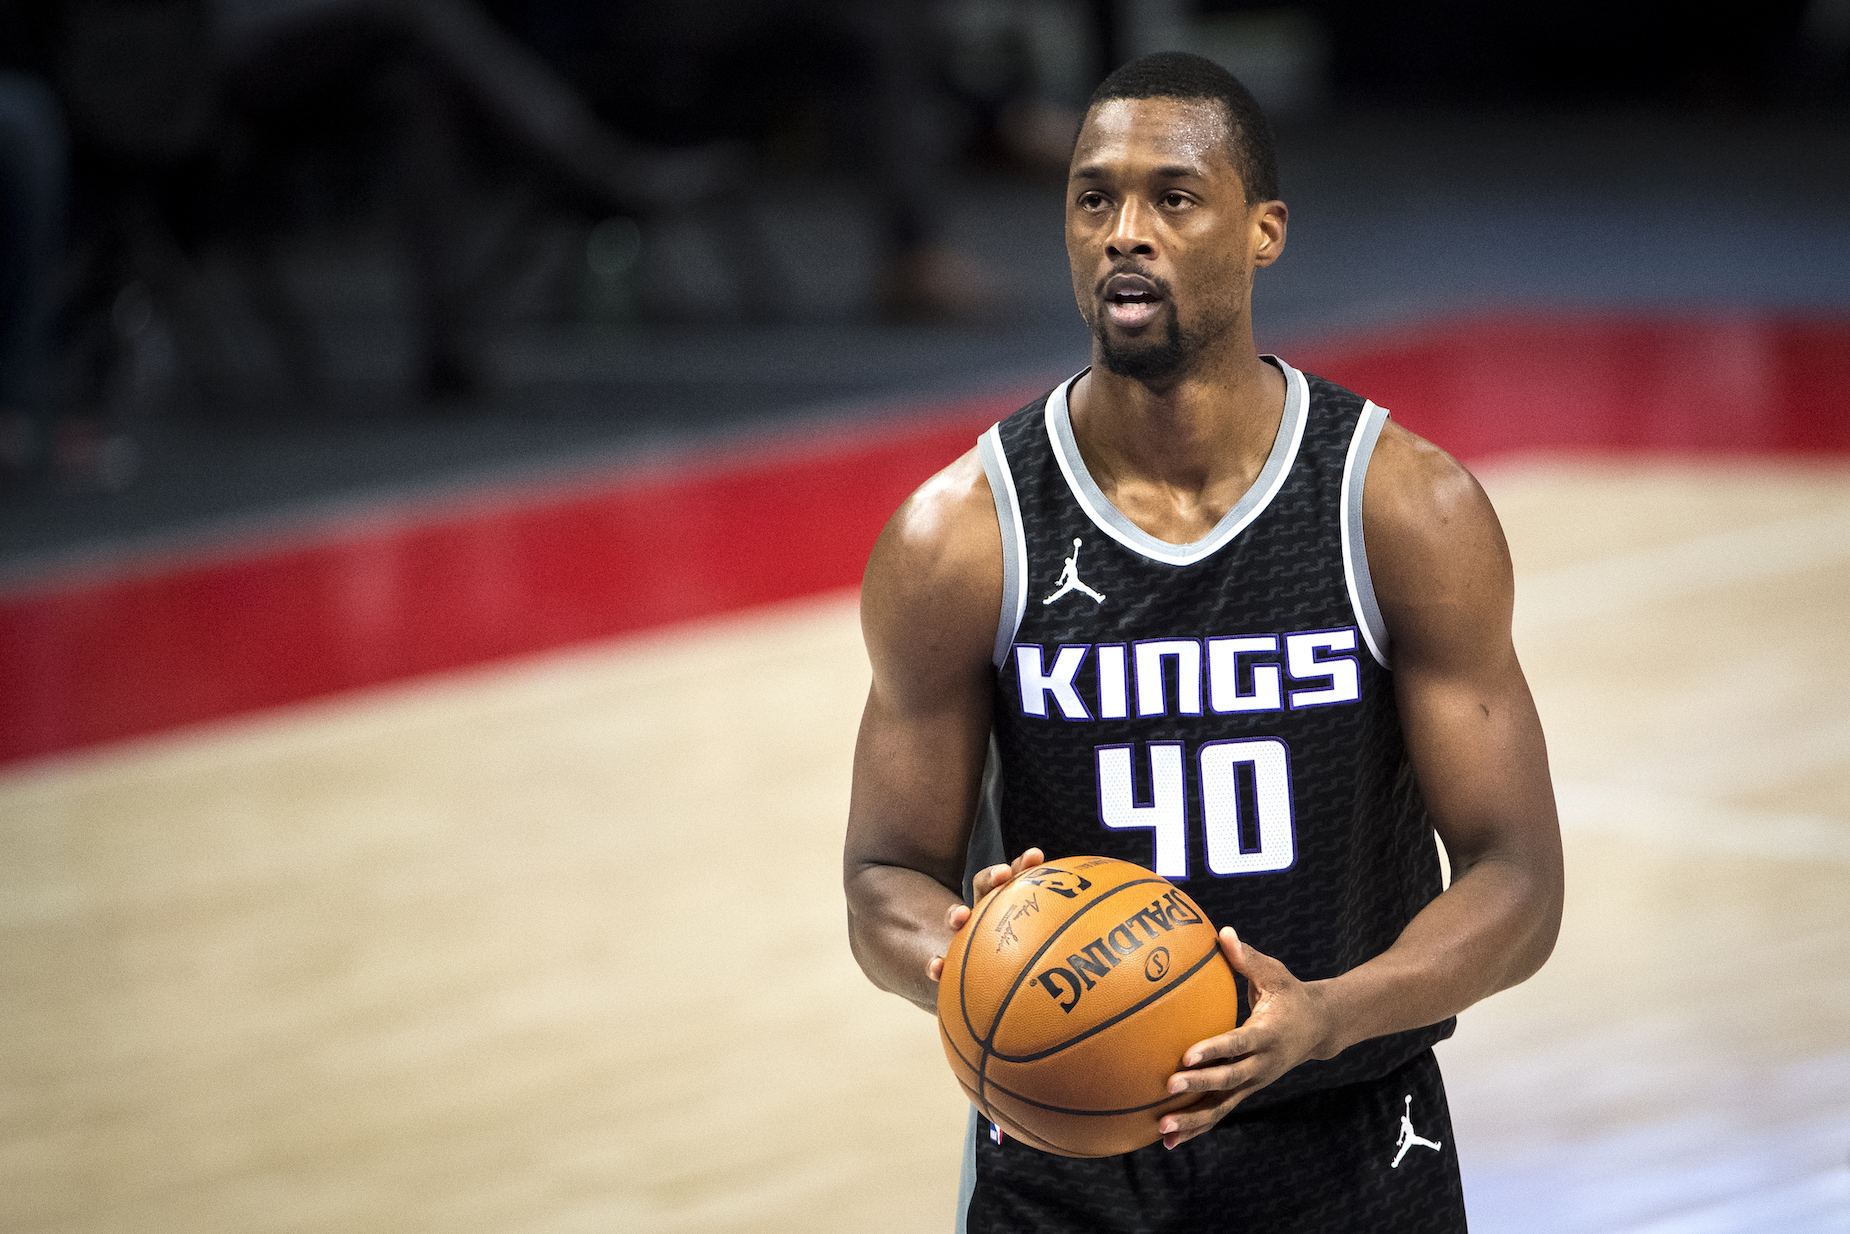 Harrison Barnes Is Worth $23 Million, but He Spent His First NBA Paycheck on Simply Getting a Good Night's Sleep